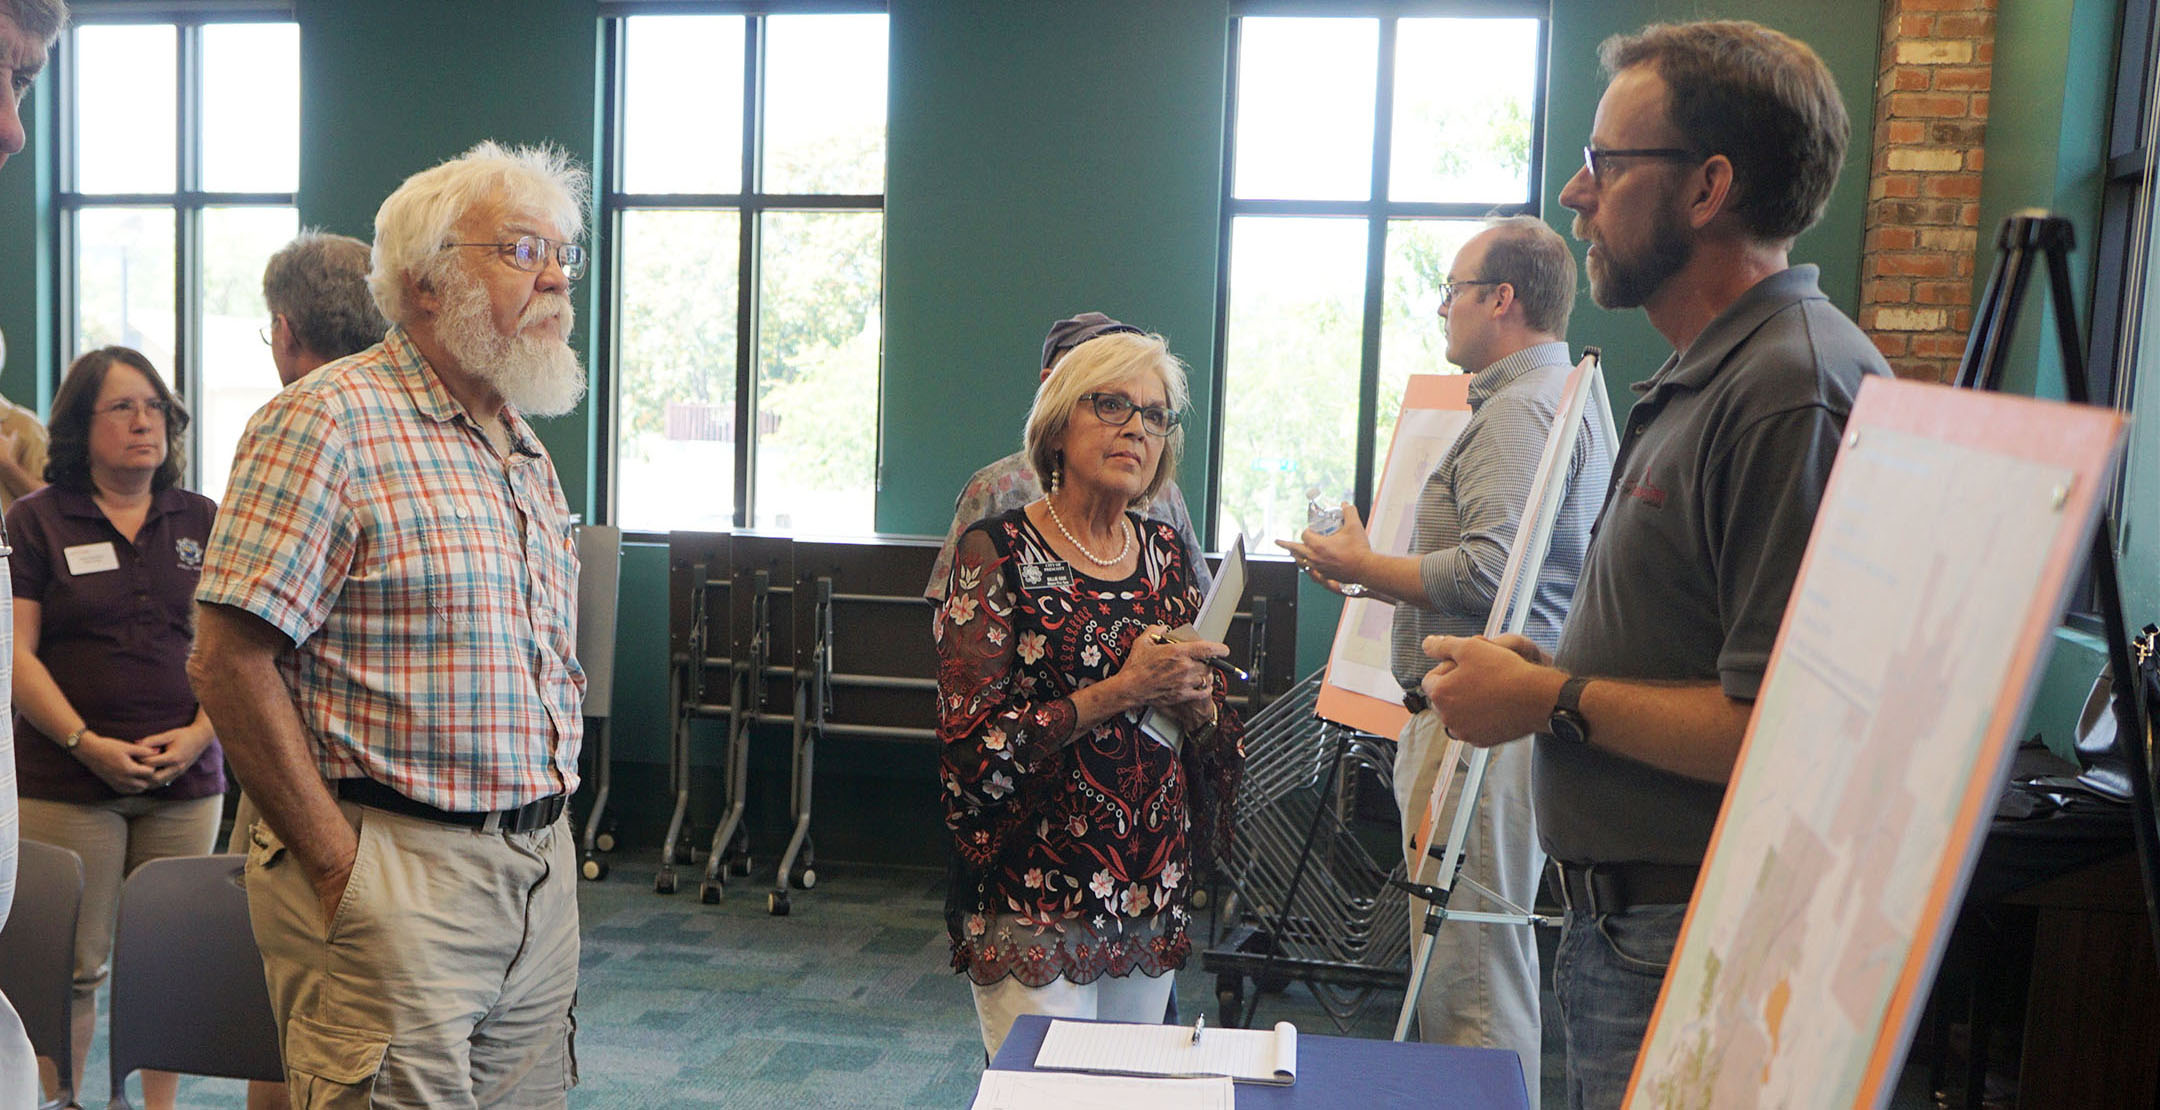 City kicks off community meetings on water policy changes